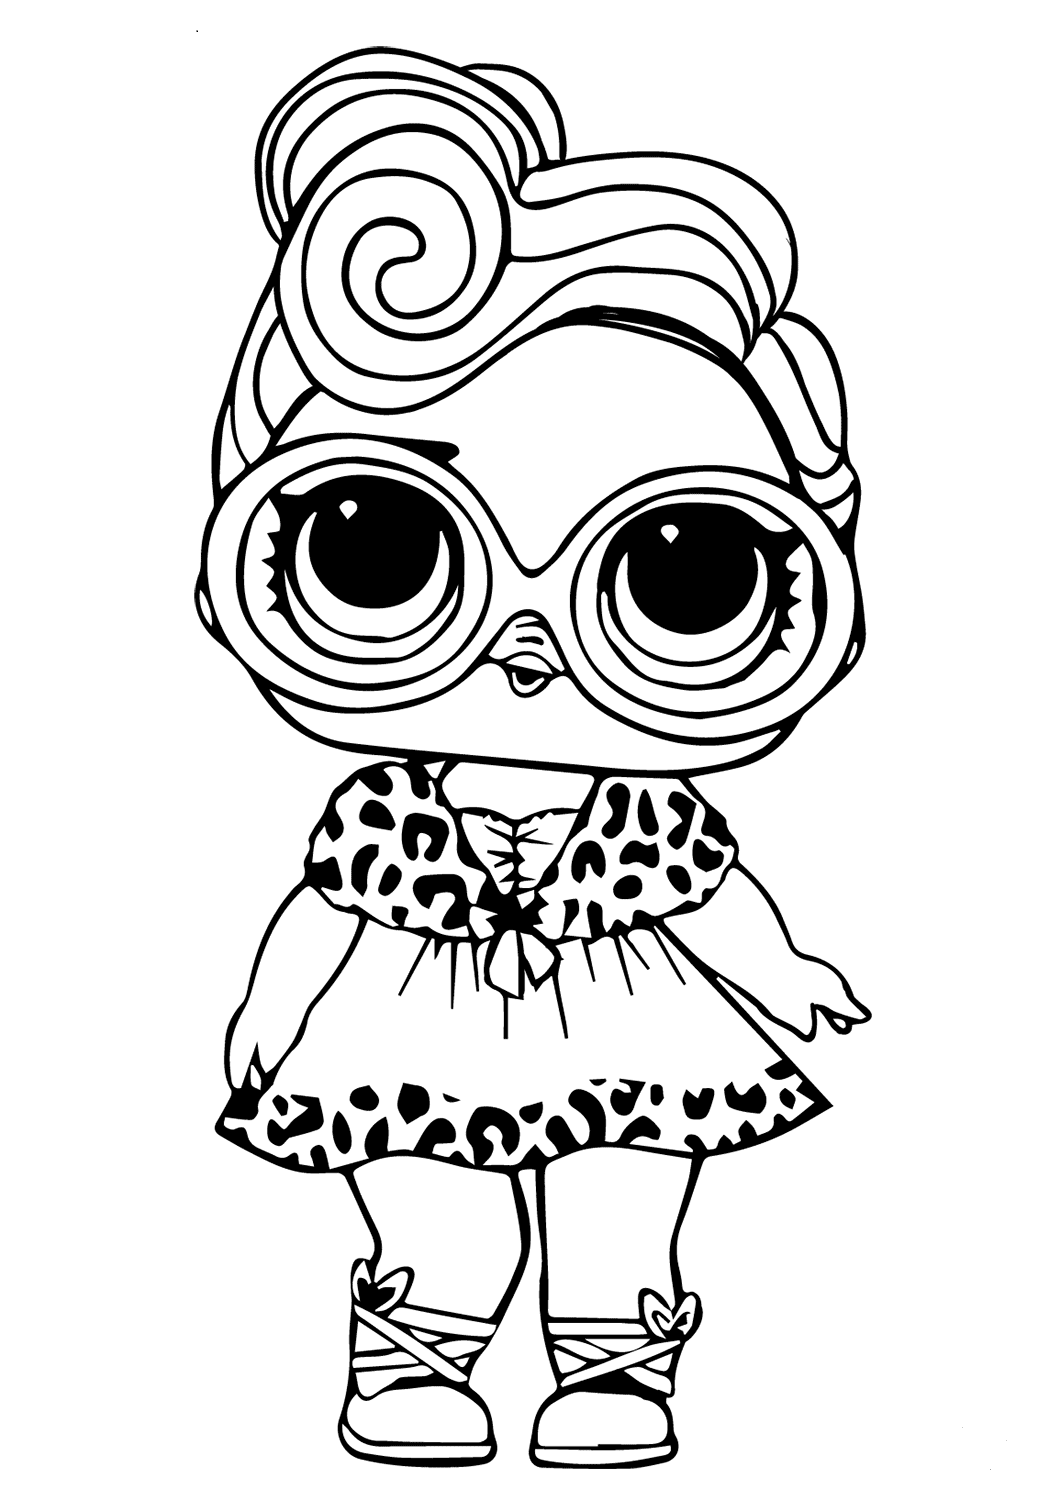 Merbaby Lol Doll Coloring Pages In 2020 Bee Coloring Pages Free Printable Coloring Pages Coloring Pages